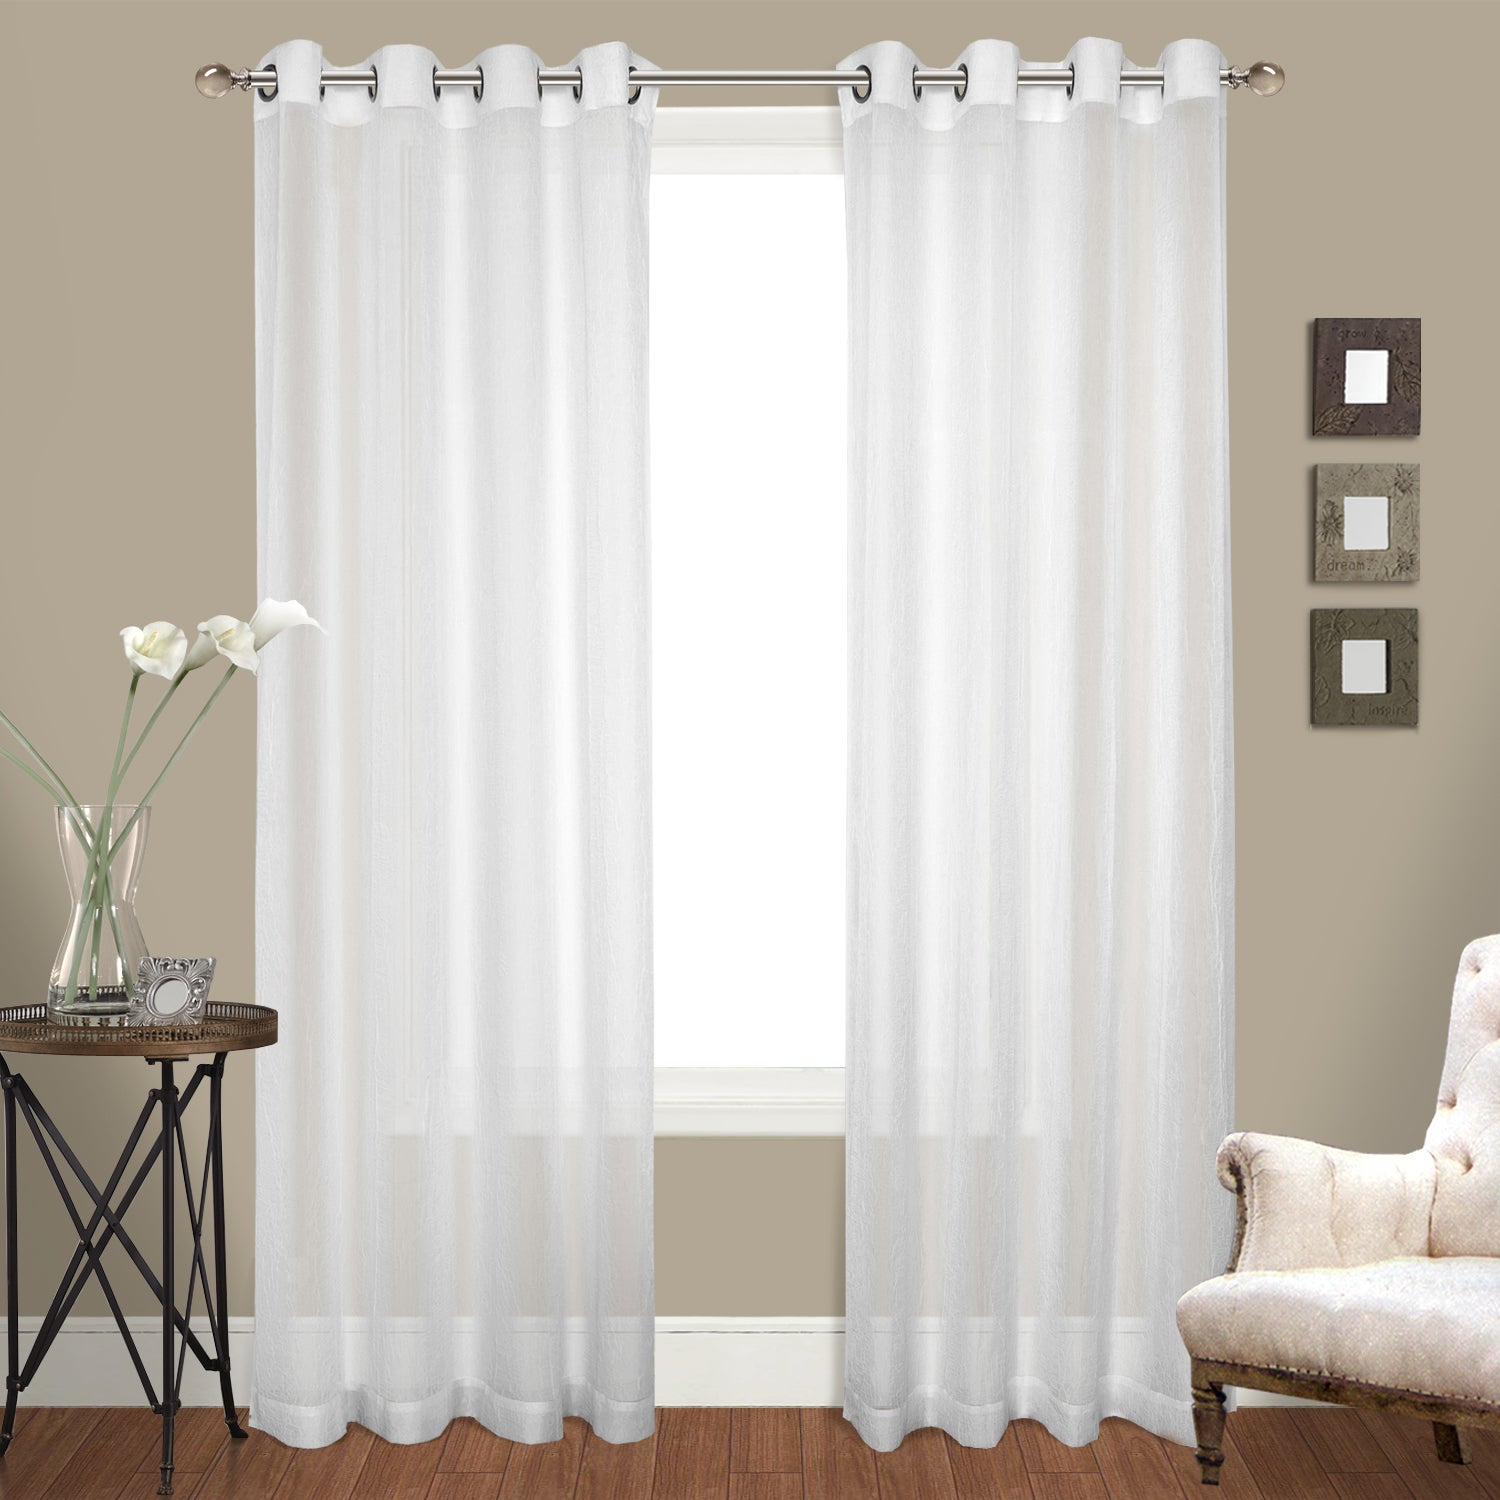 Luxury Collection Venetian Sheer Curtain Panel Pair Within Luxury Collection Monte Carlo Sheer Curtain Panel Pairs (View 5 of 20)